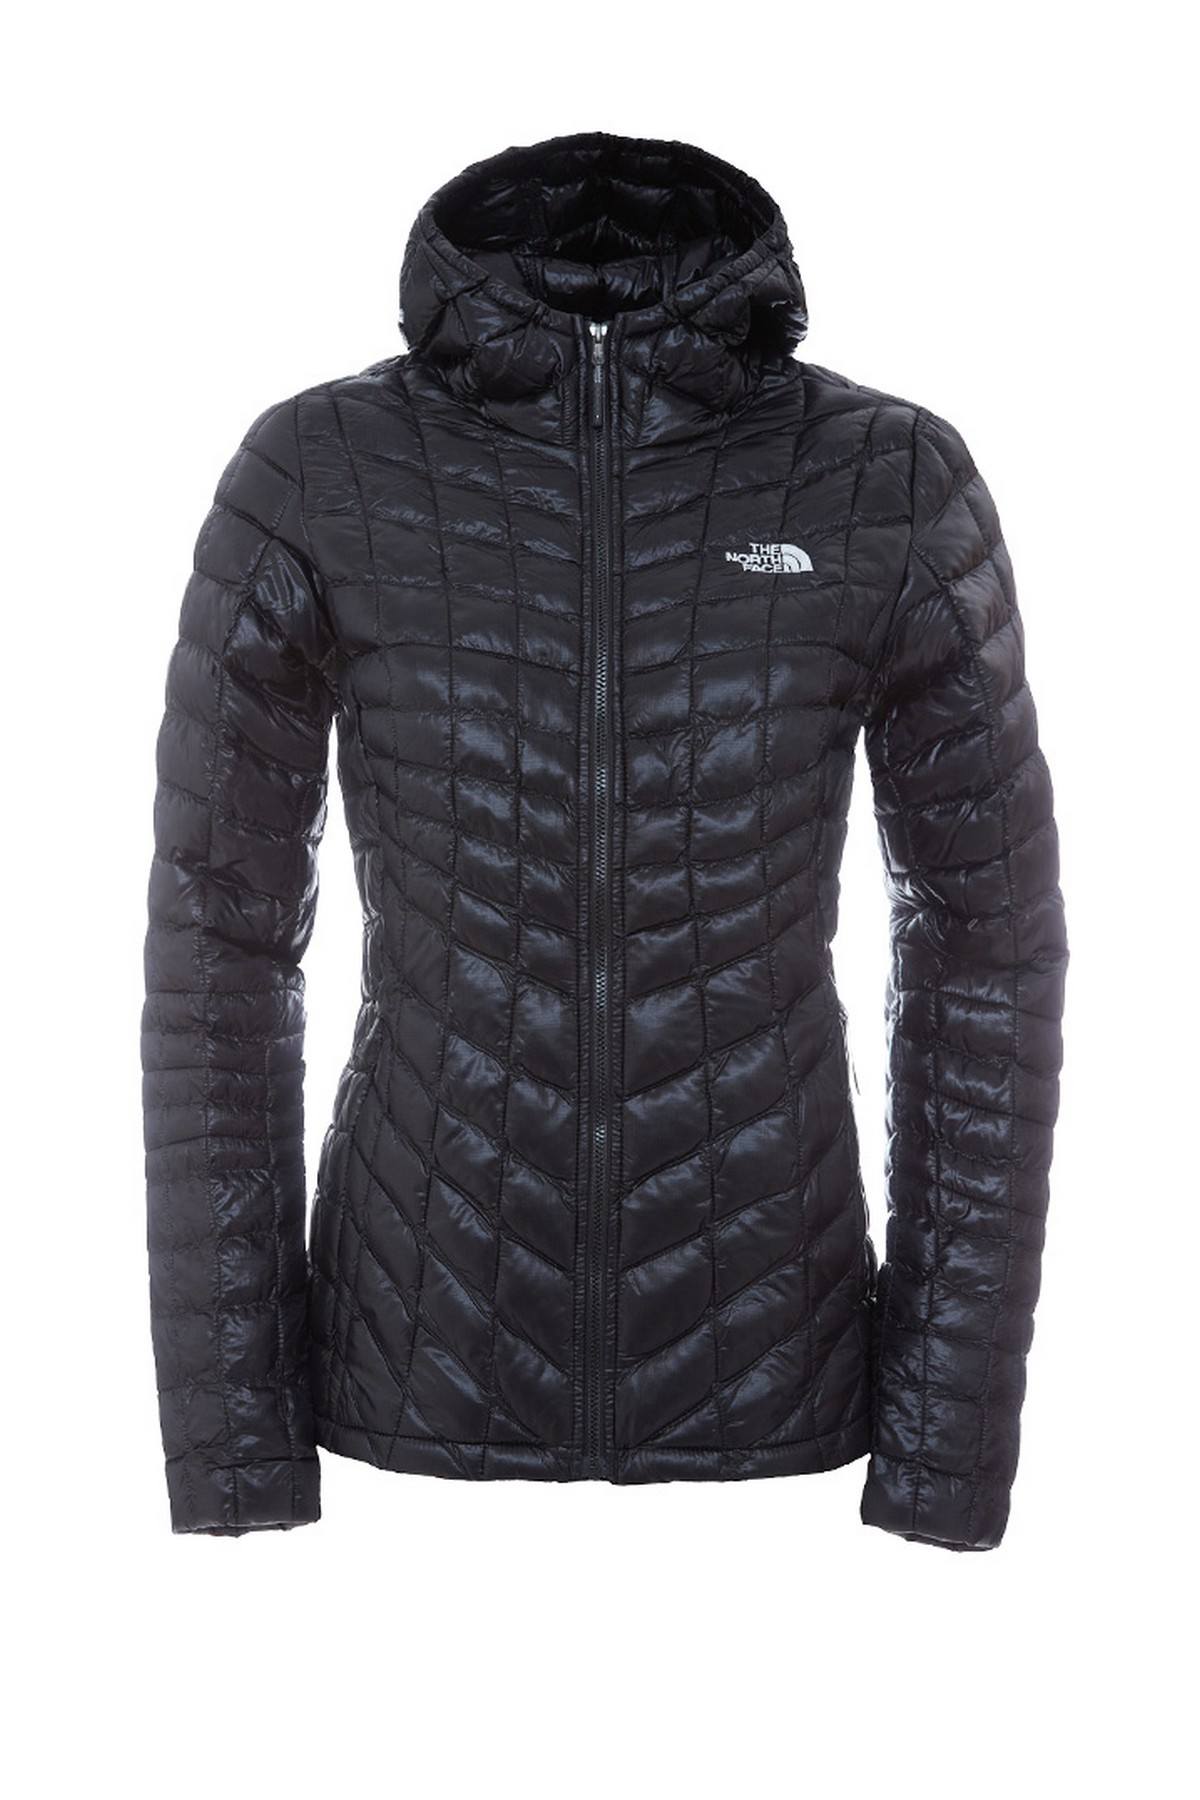 The North Face Thermoball Kadın Mont Siyah (T0CUC5JK3)